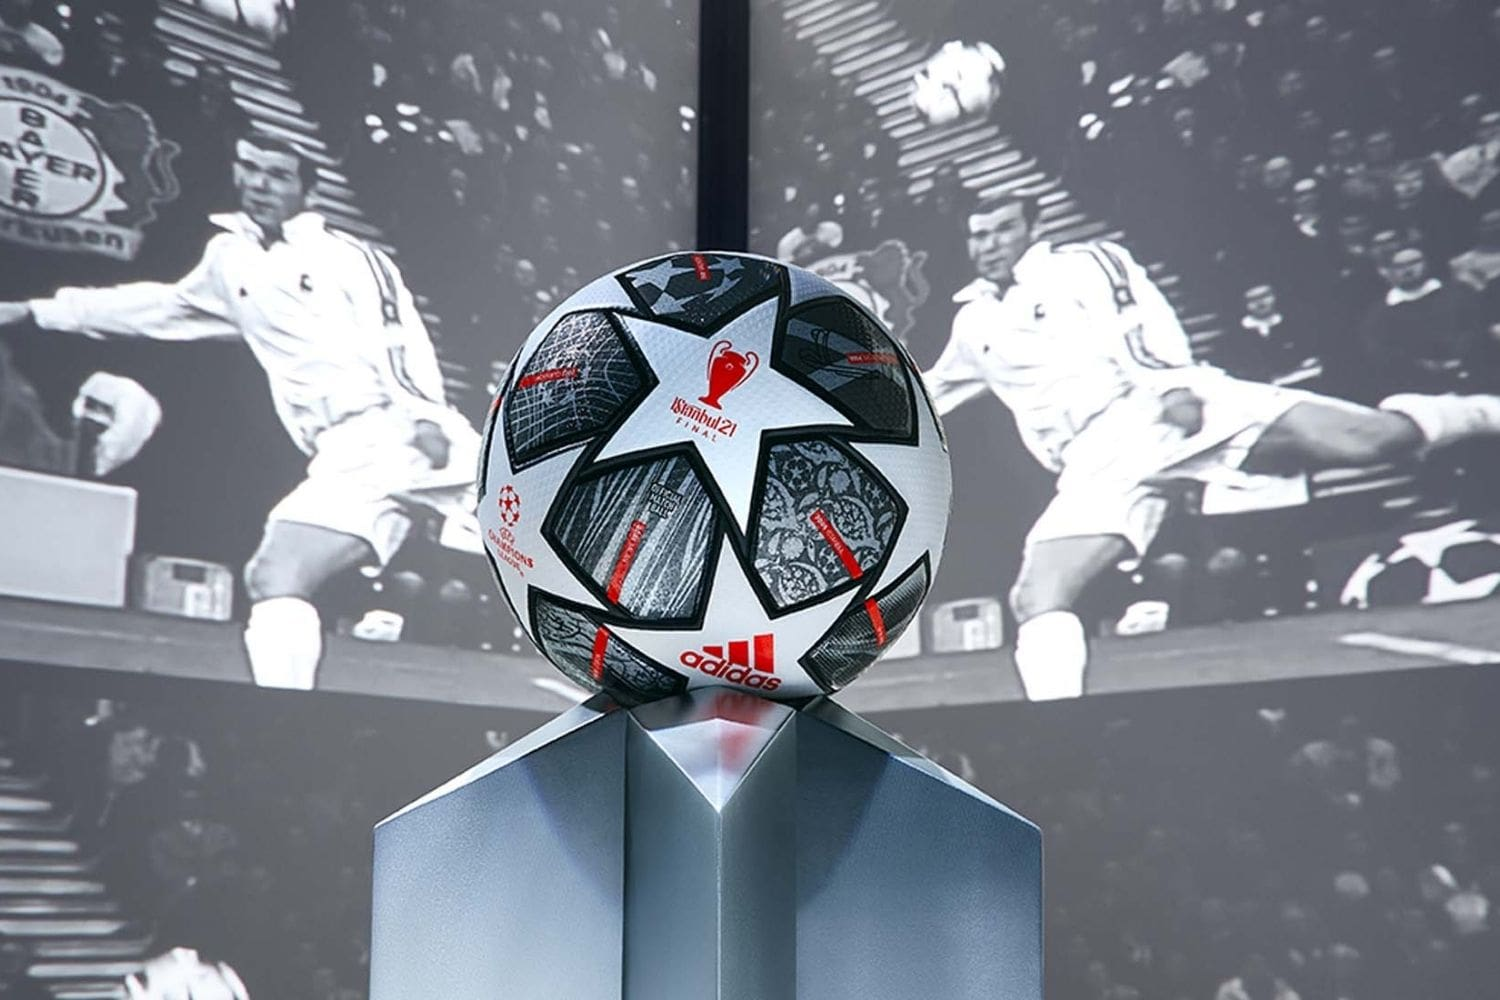 Bola UCL 2021 Adidas Finale Istanbul 21